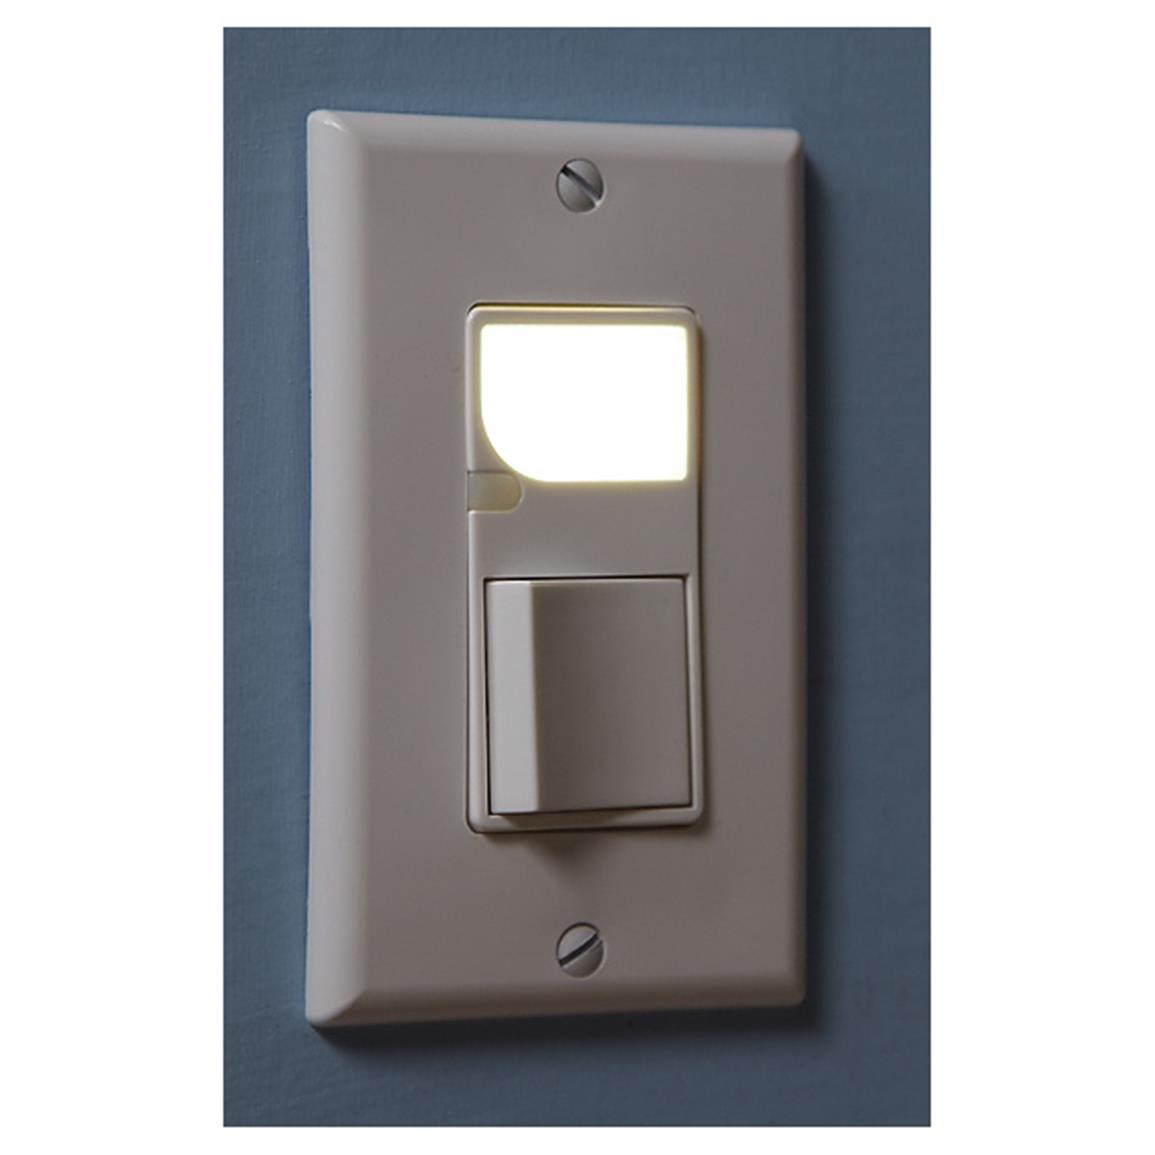 2 Pk Of Leviton Switches With Led Night Lights White